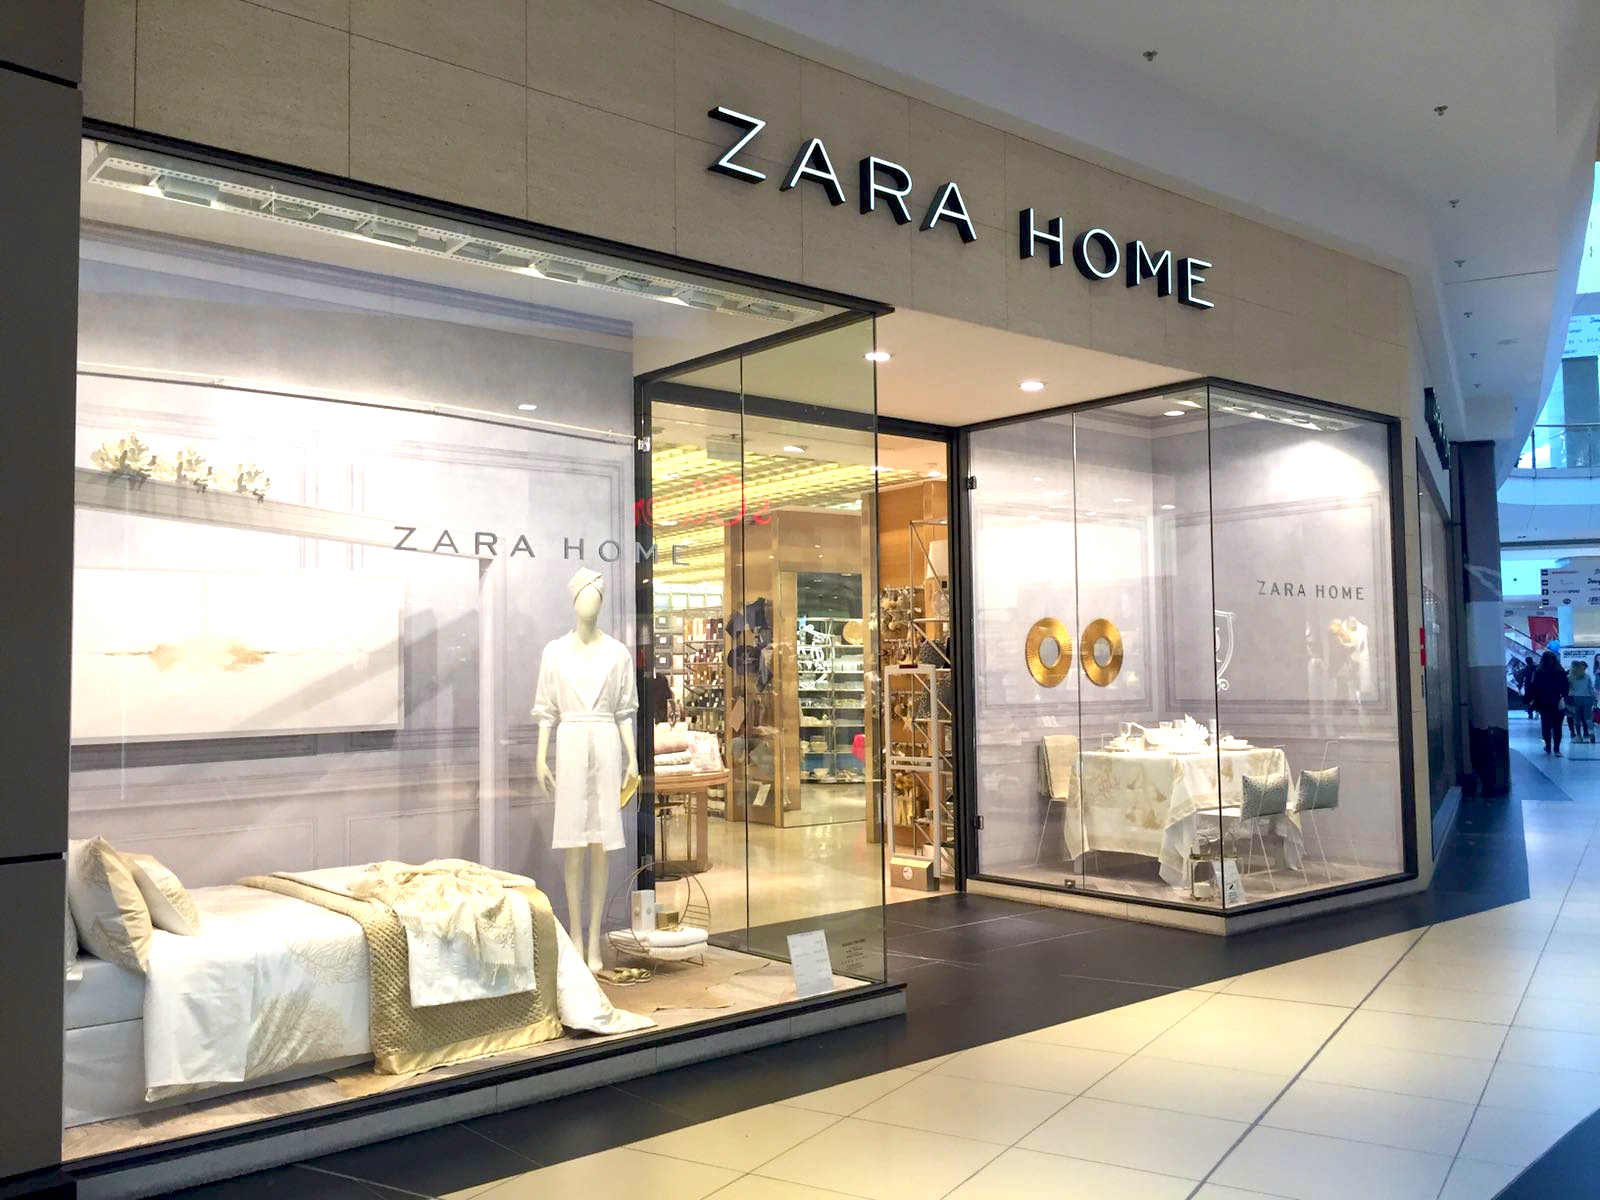 5 pretty decor finds from my zara home shopping spree Shopping for home